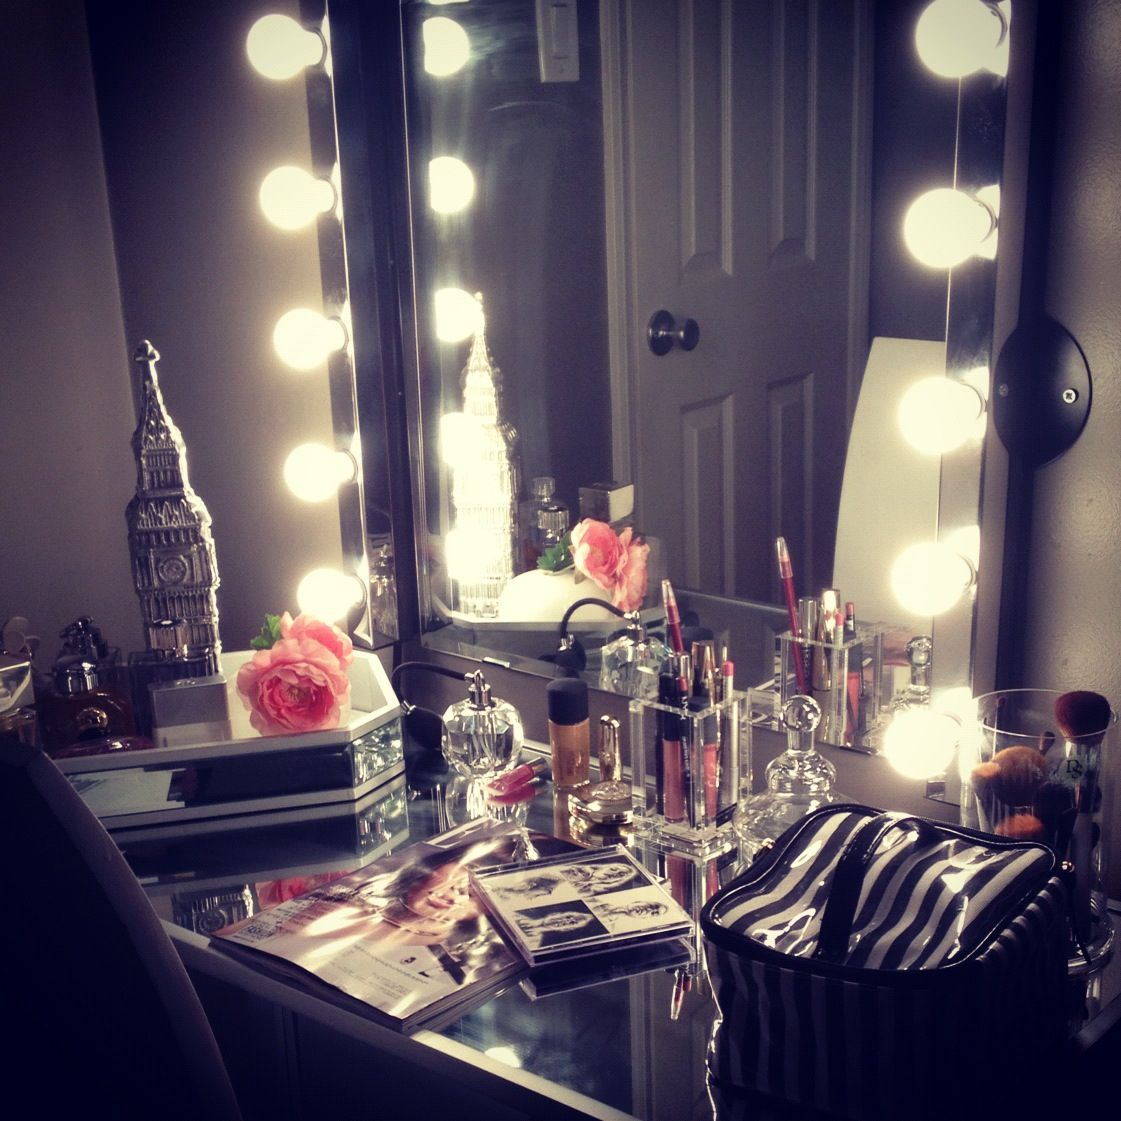 mirrored lighting. My New Vanity Table And DIY Mirror With Lights! #vanity #lightedmirror # Mirrored Lighting